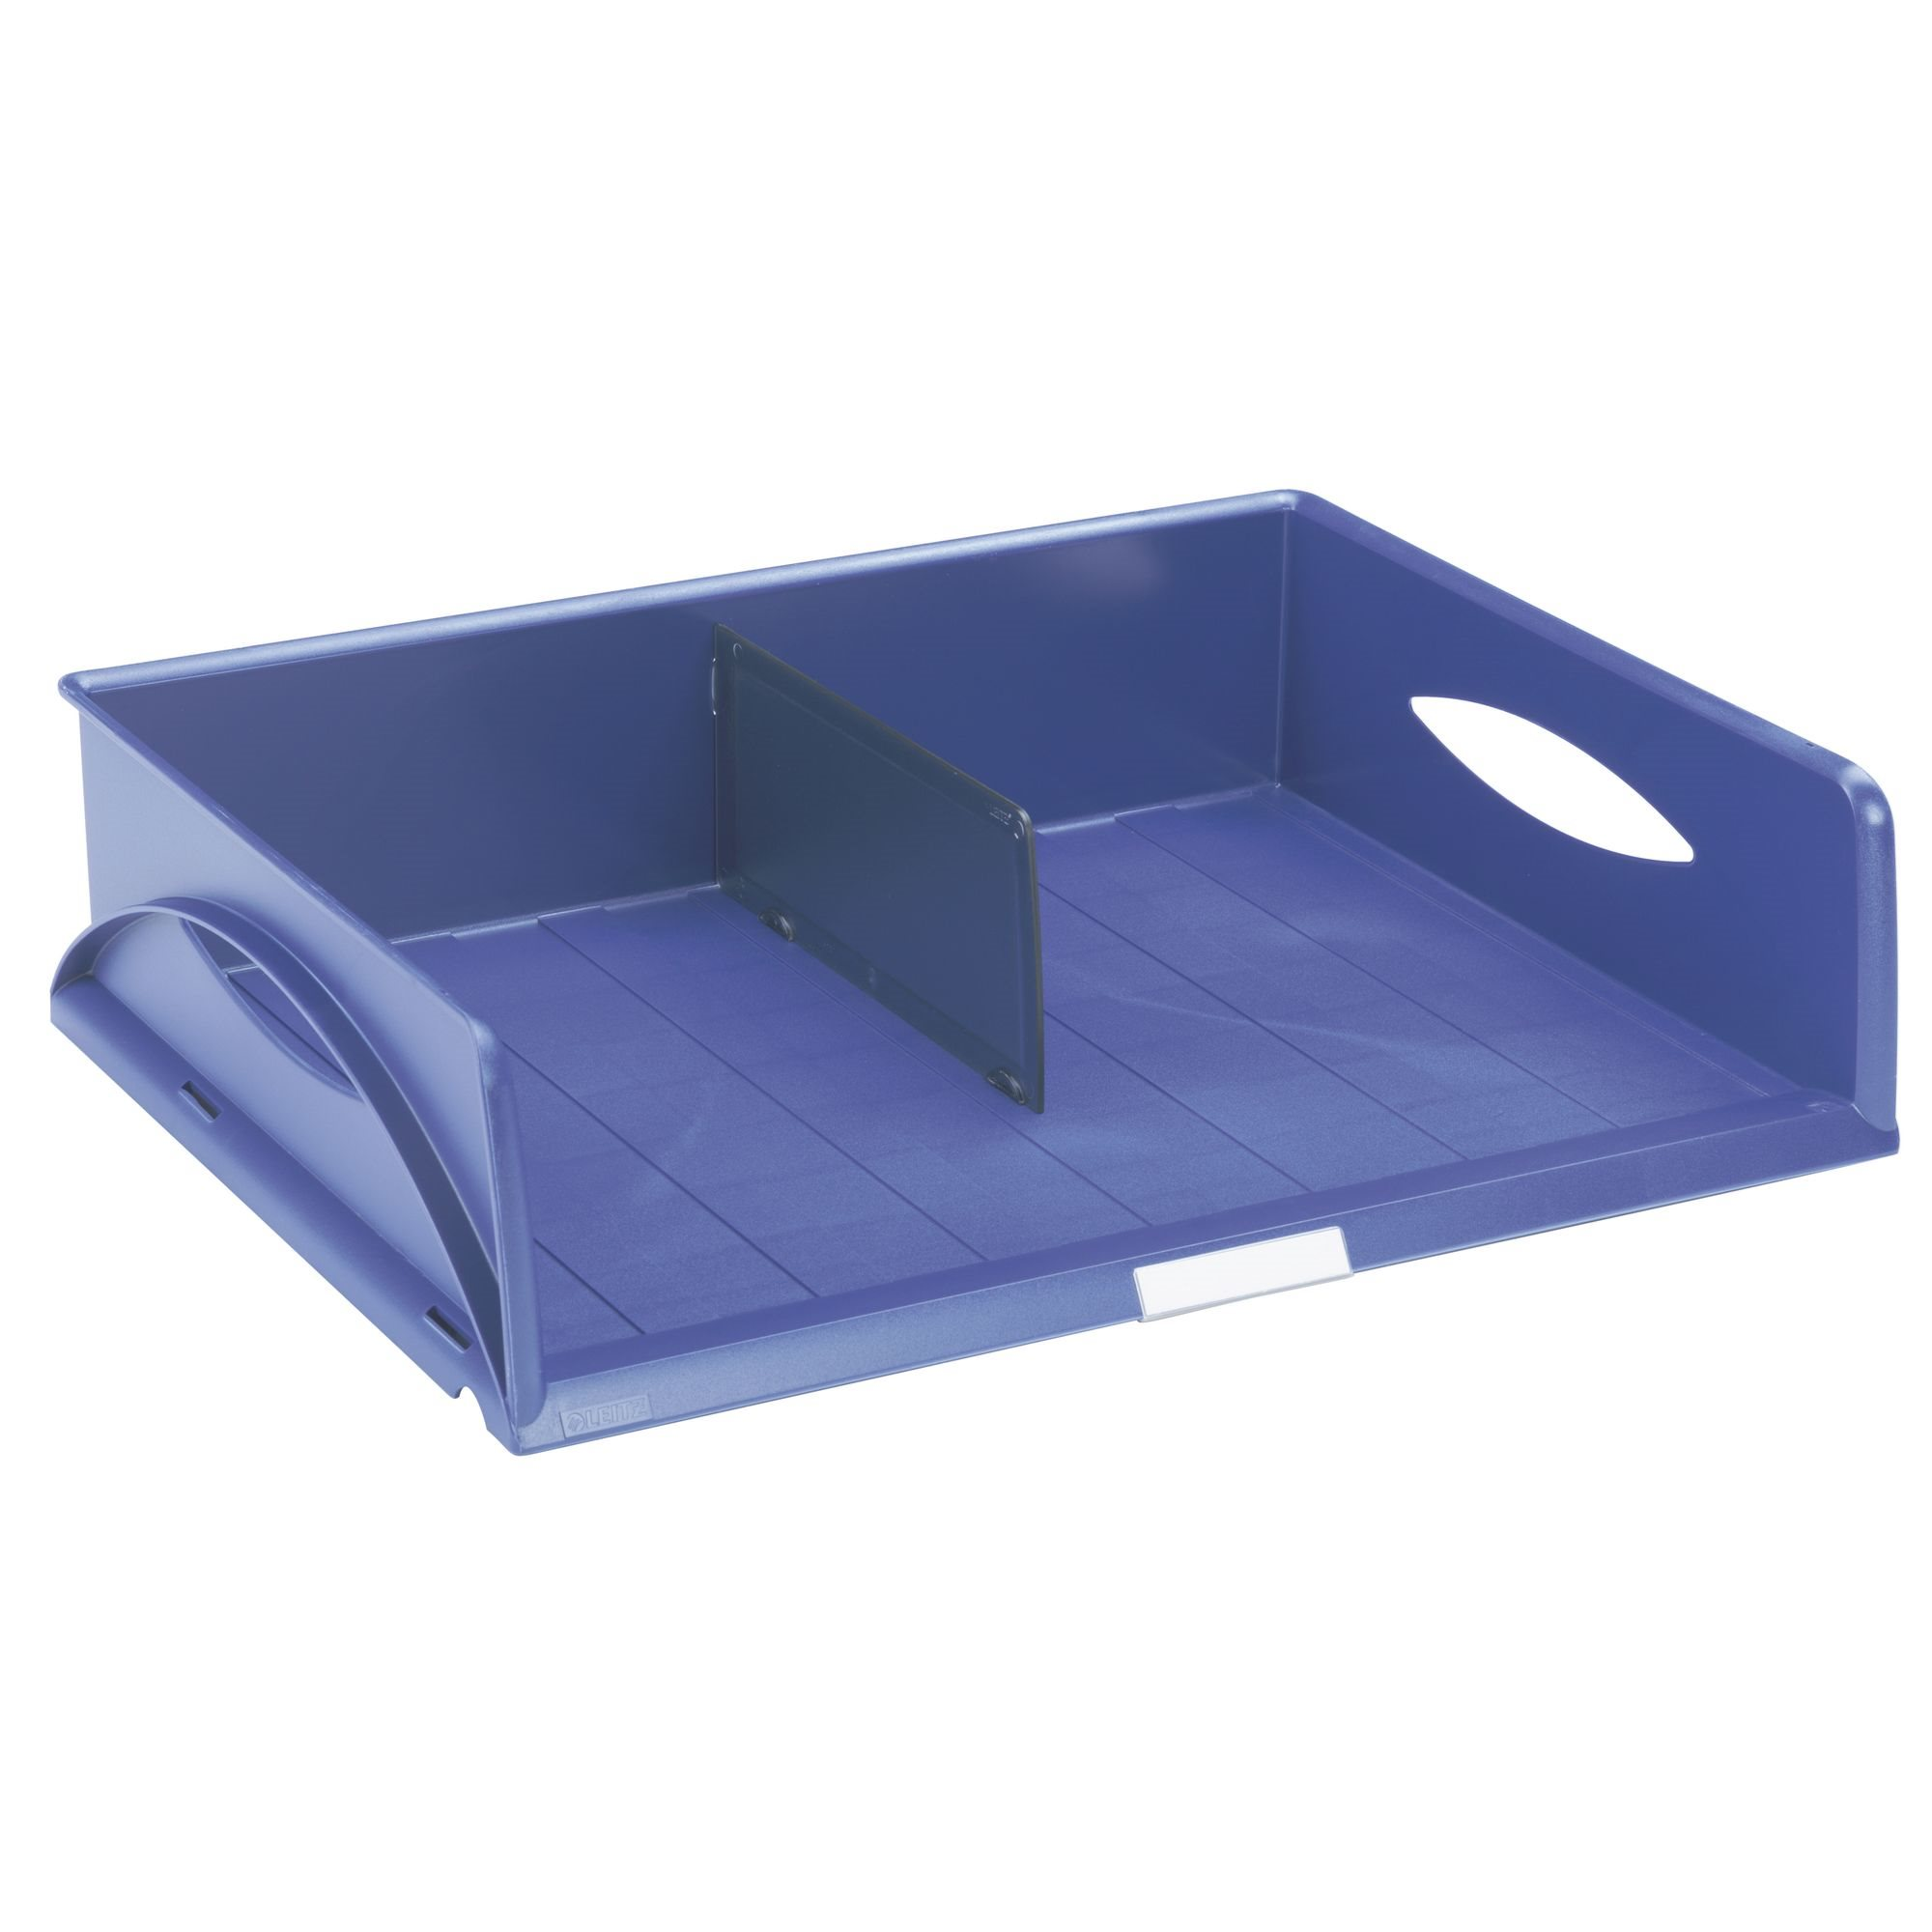 Sorty, letter tray, maxi size